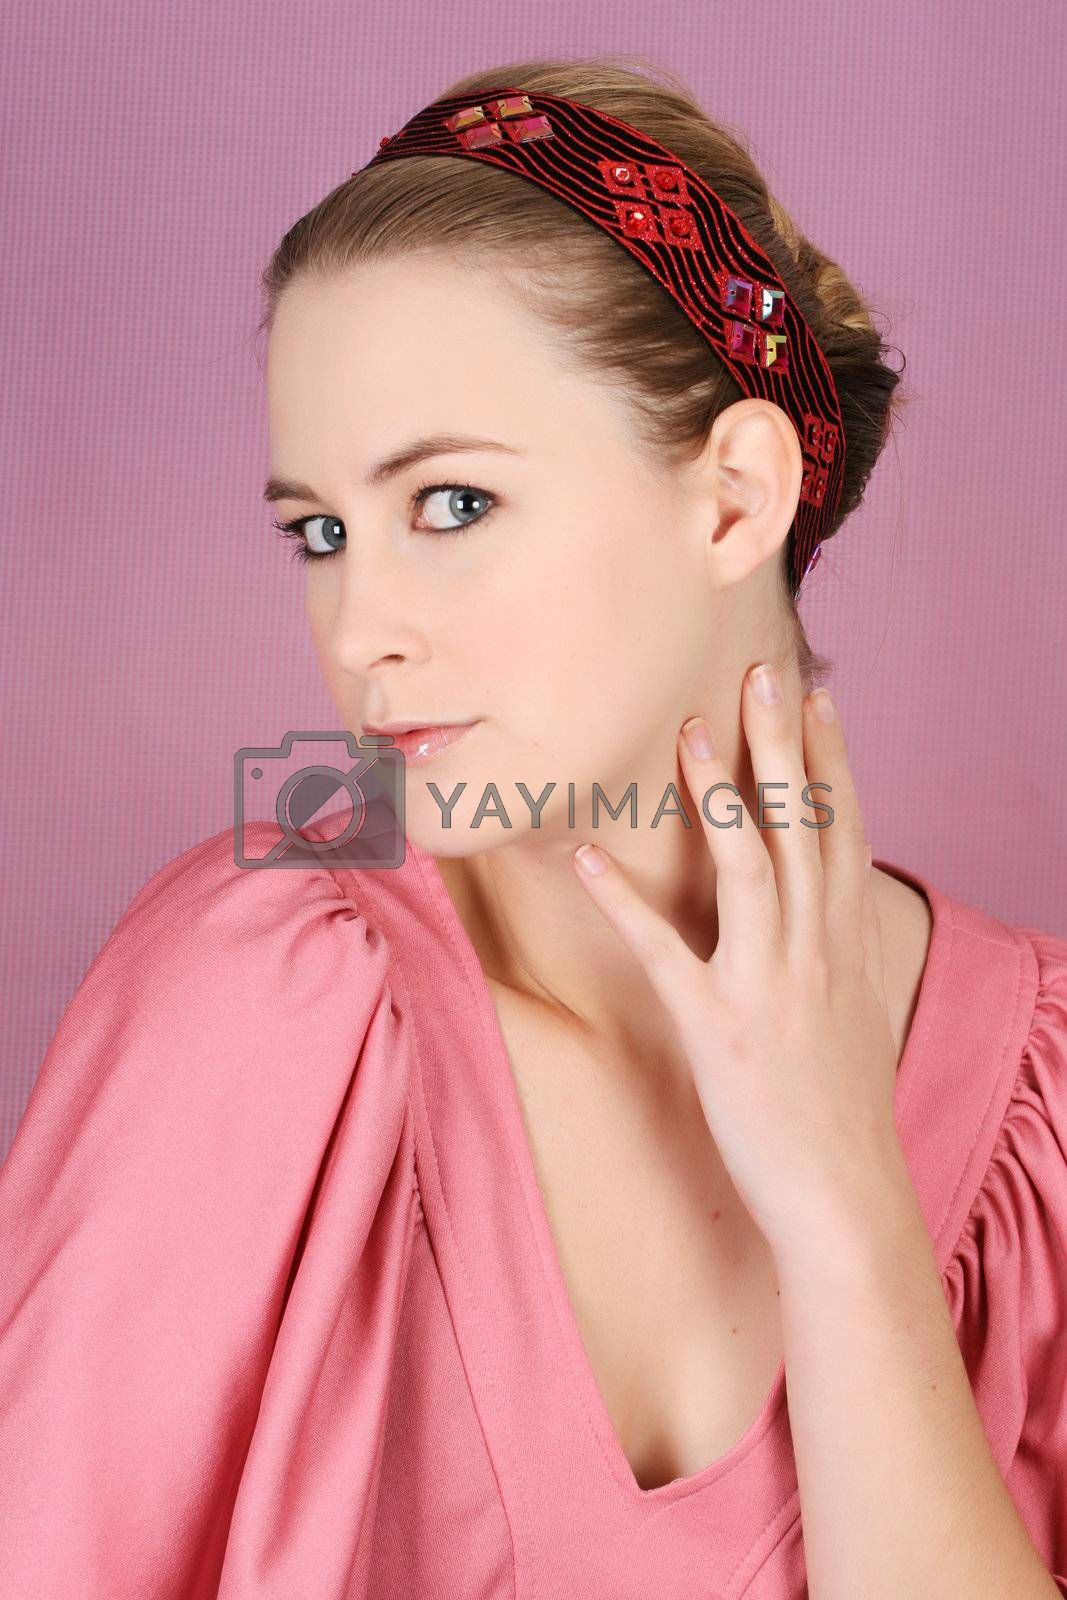 Beautiful blond female model wearing pink dress and hair accessories